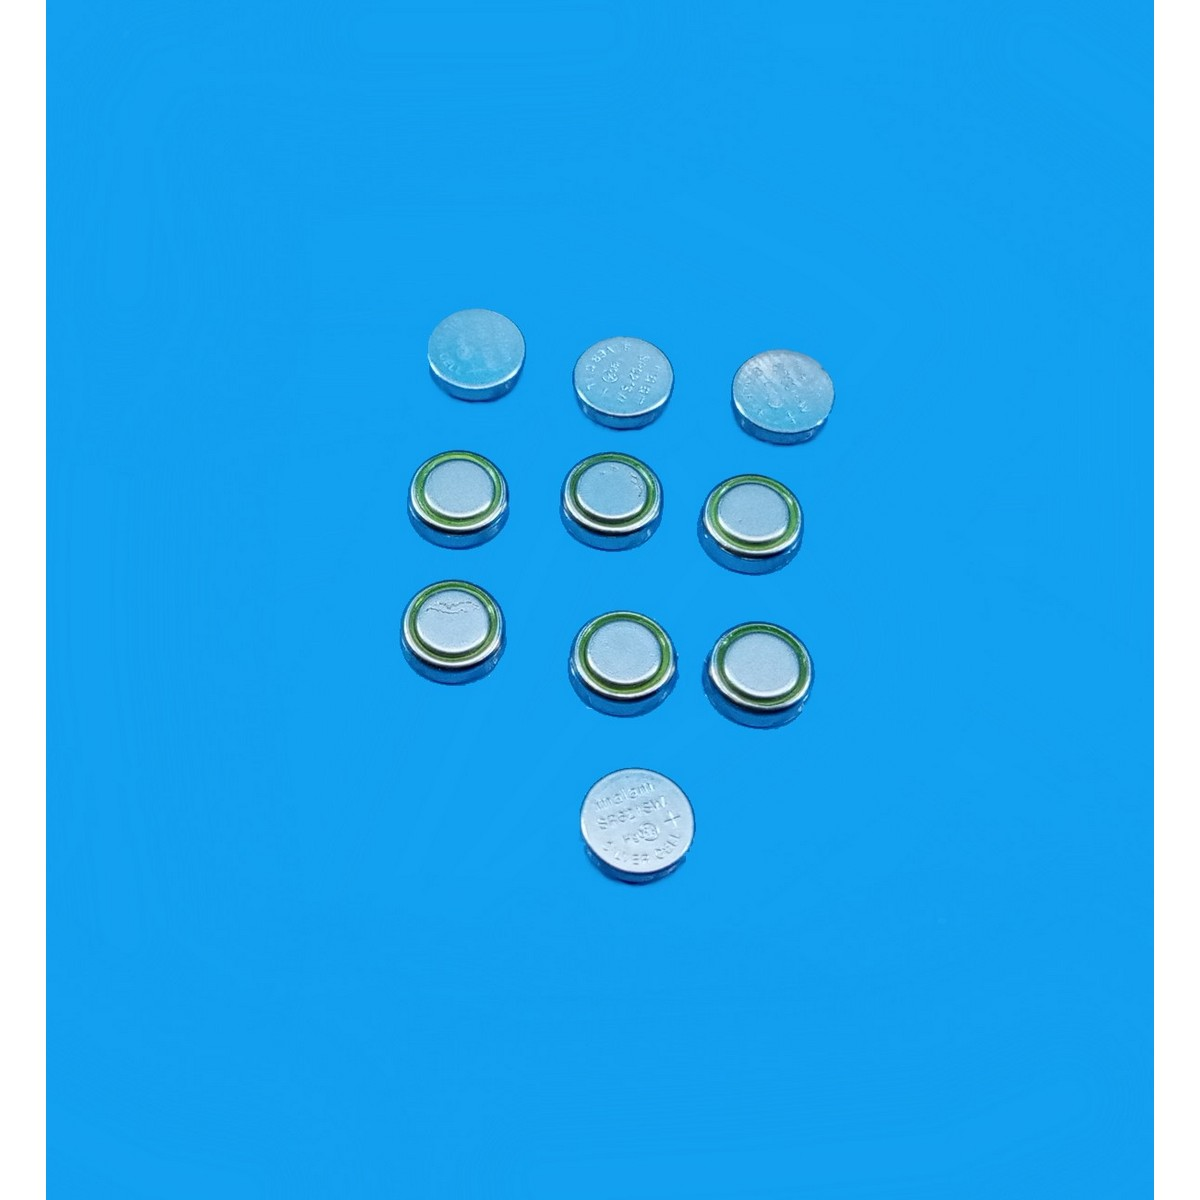 DreamsMart 10pcs SR621SW Alkaline 1.5V Battery Coin Button Cell for Wrist Watches, Small Toys, Remote Keys LR621, LR60, LR620, SW621, GP164, 364X, 364A